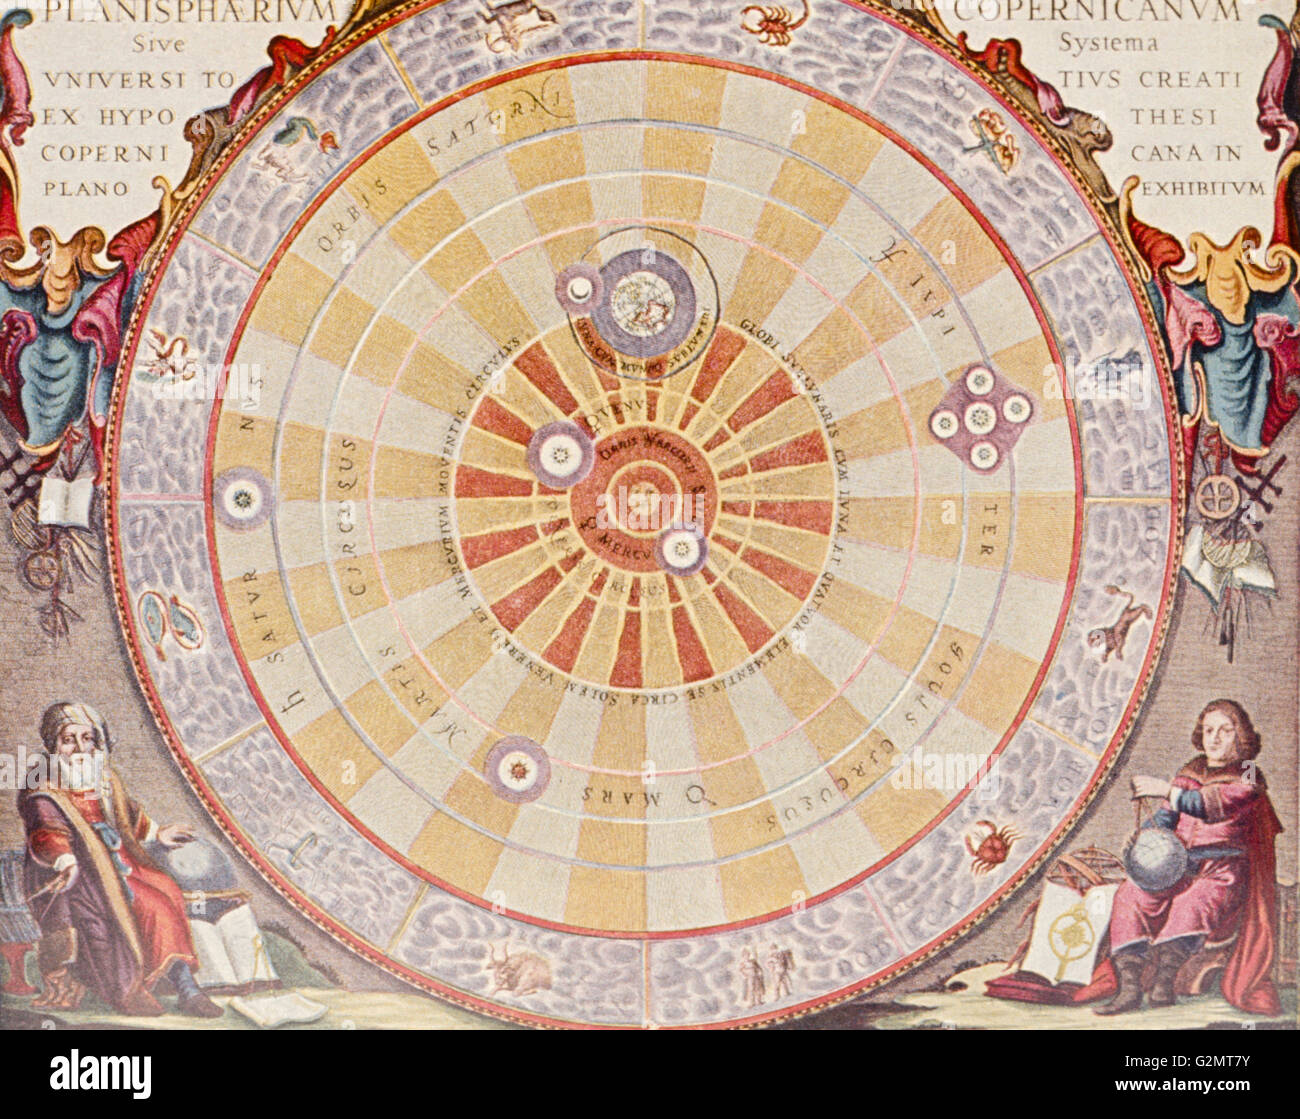 Copernican Principle High Resolution Stock Photography and Images ...